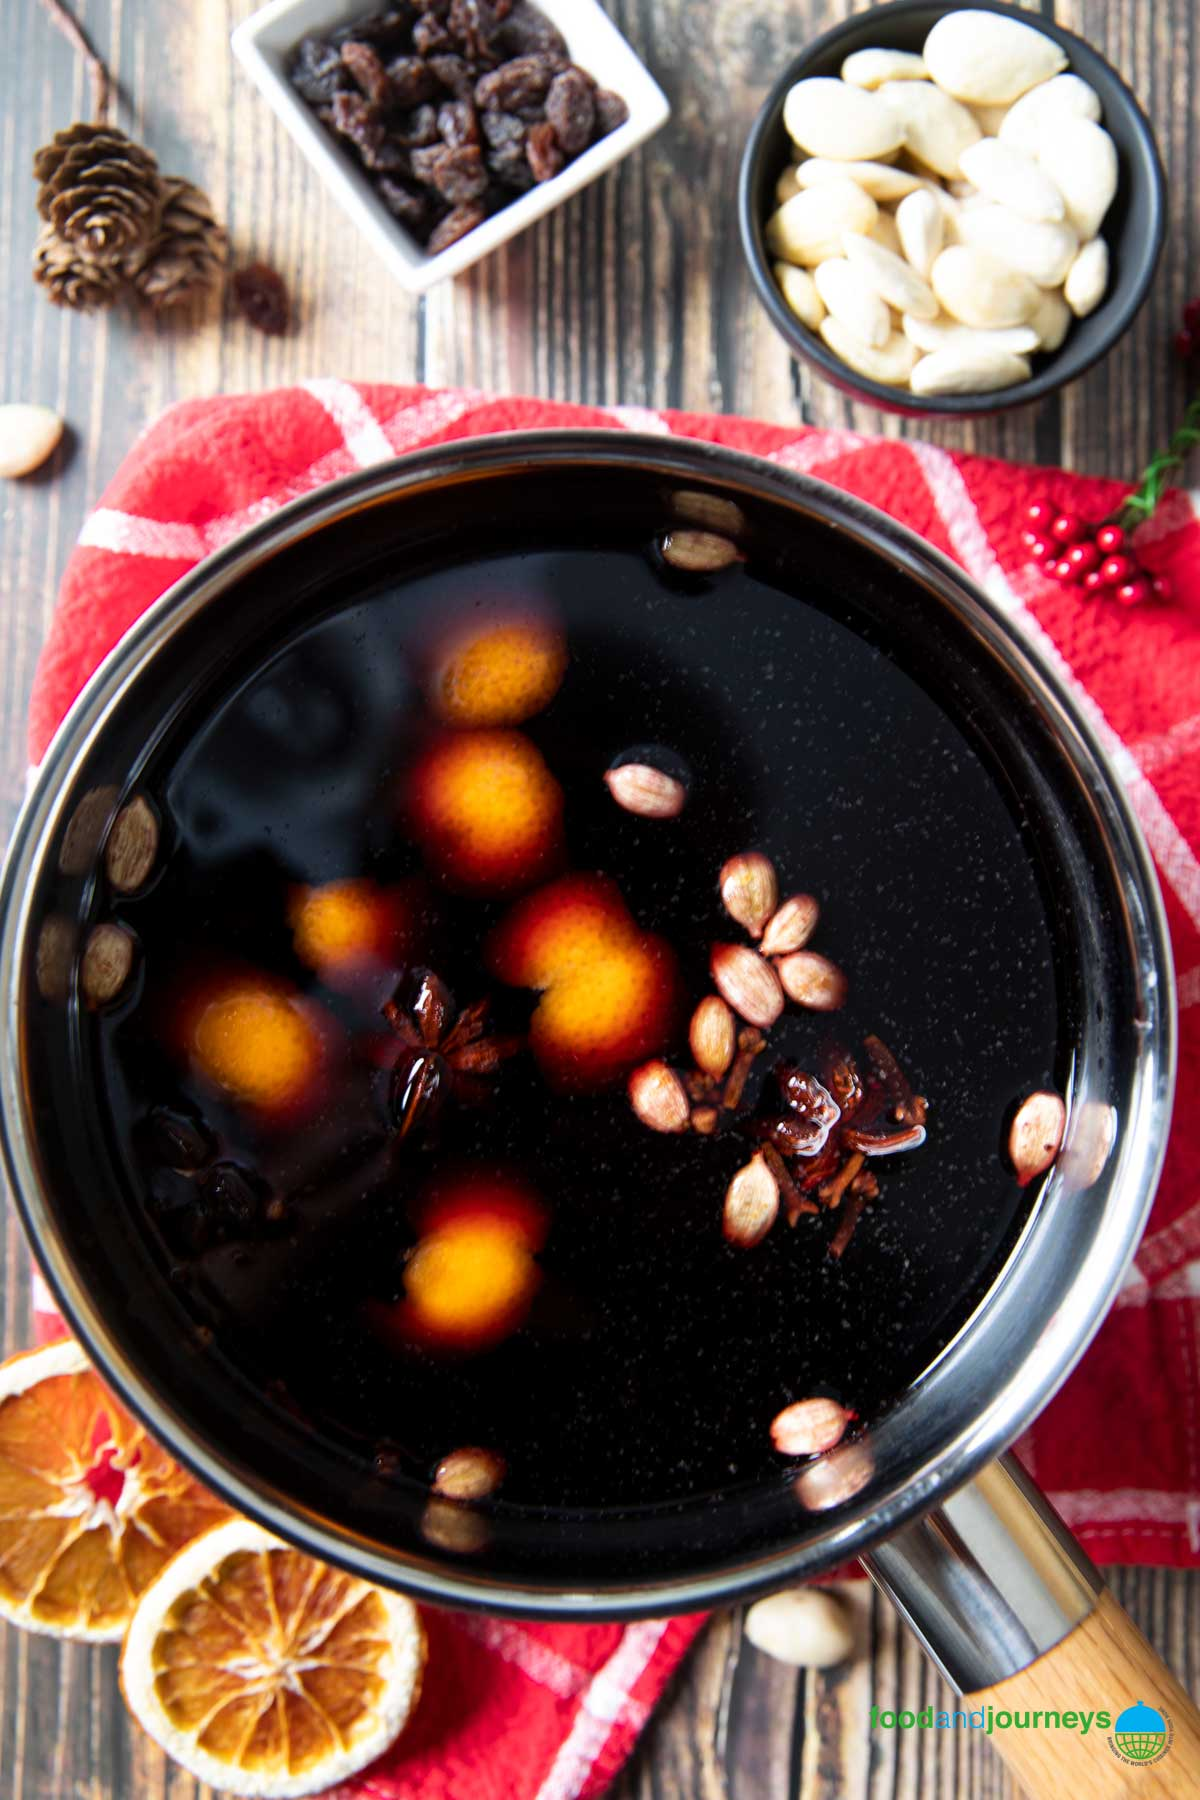 An overhead shot of a pan of homemade glögg, ready for serving, with raisins and almonds on the side.